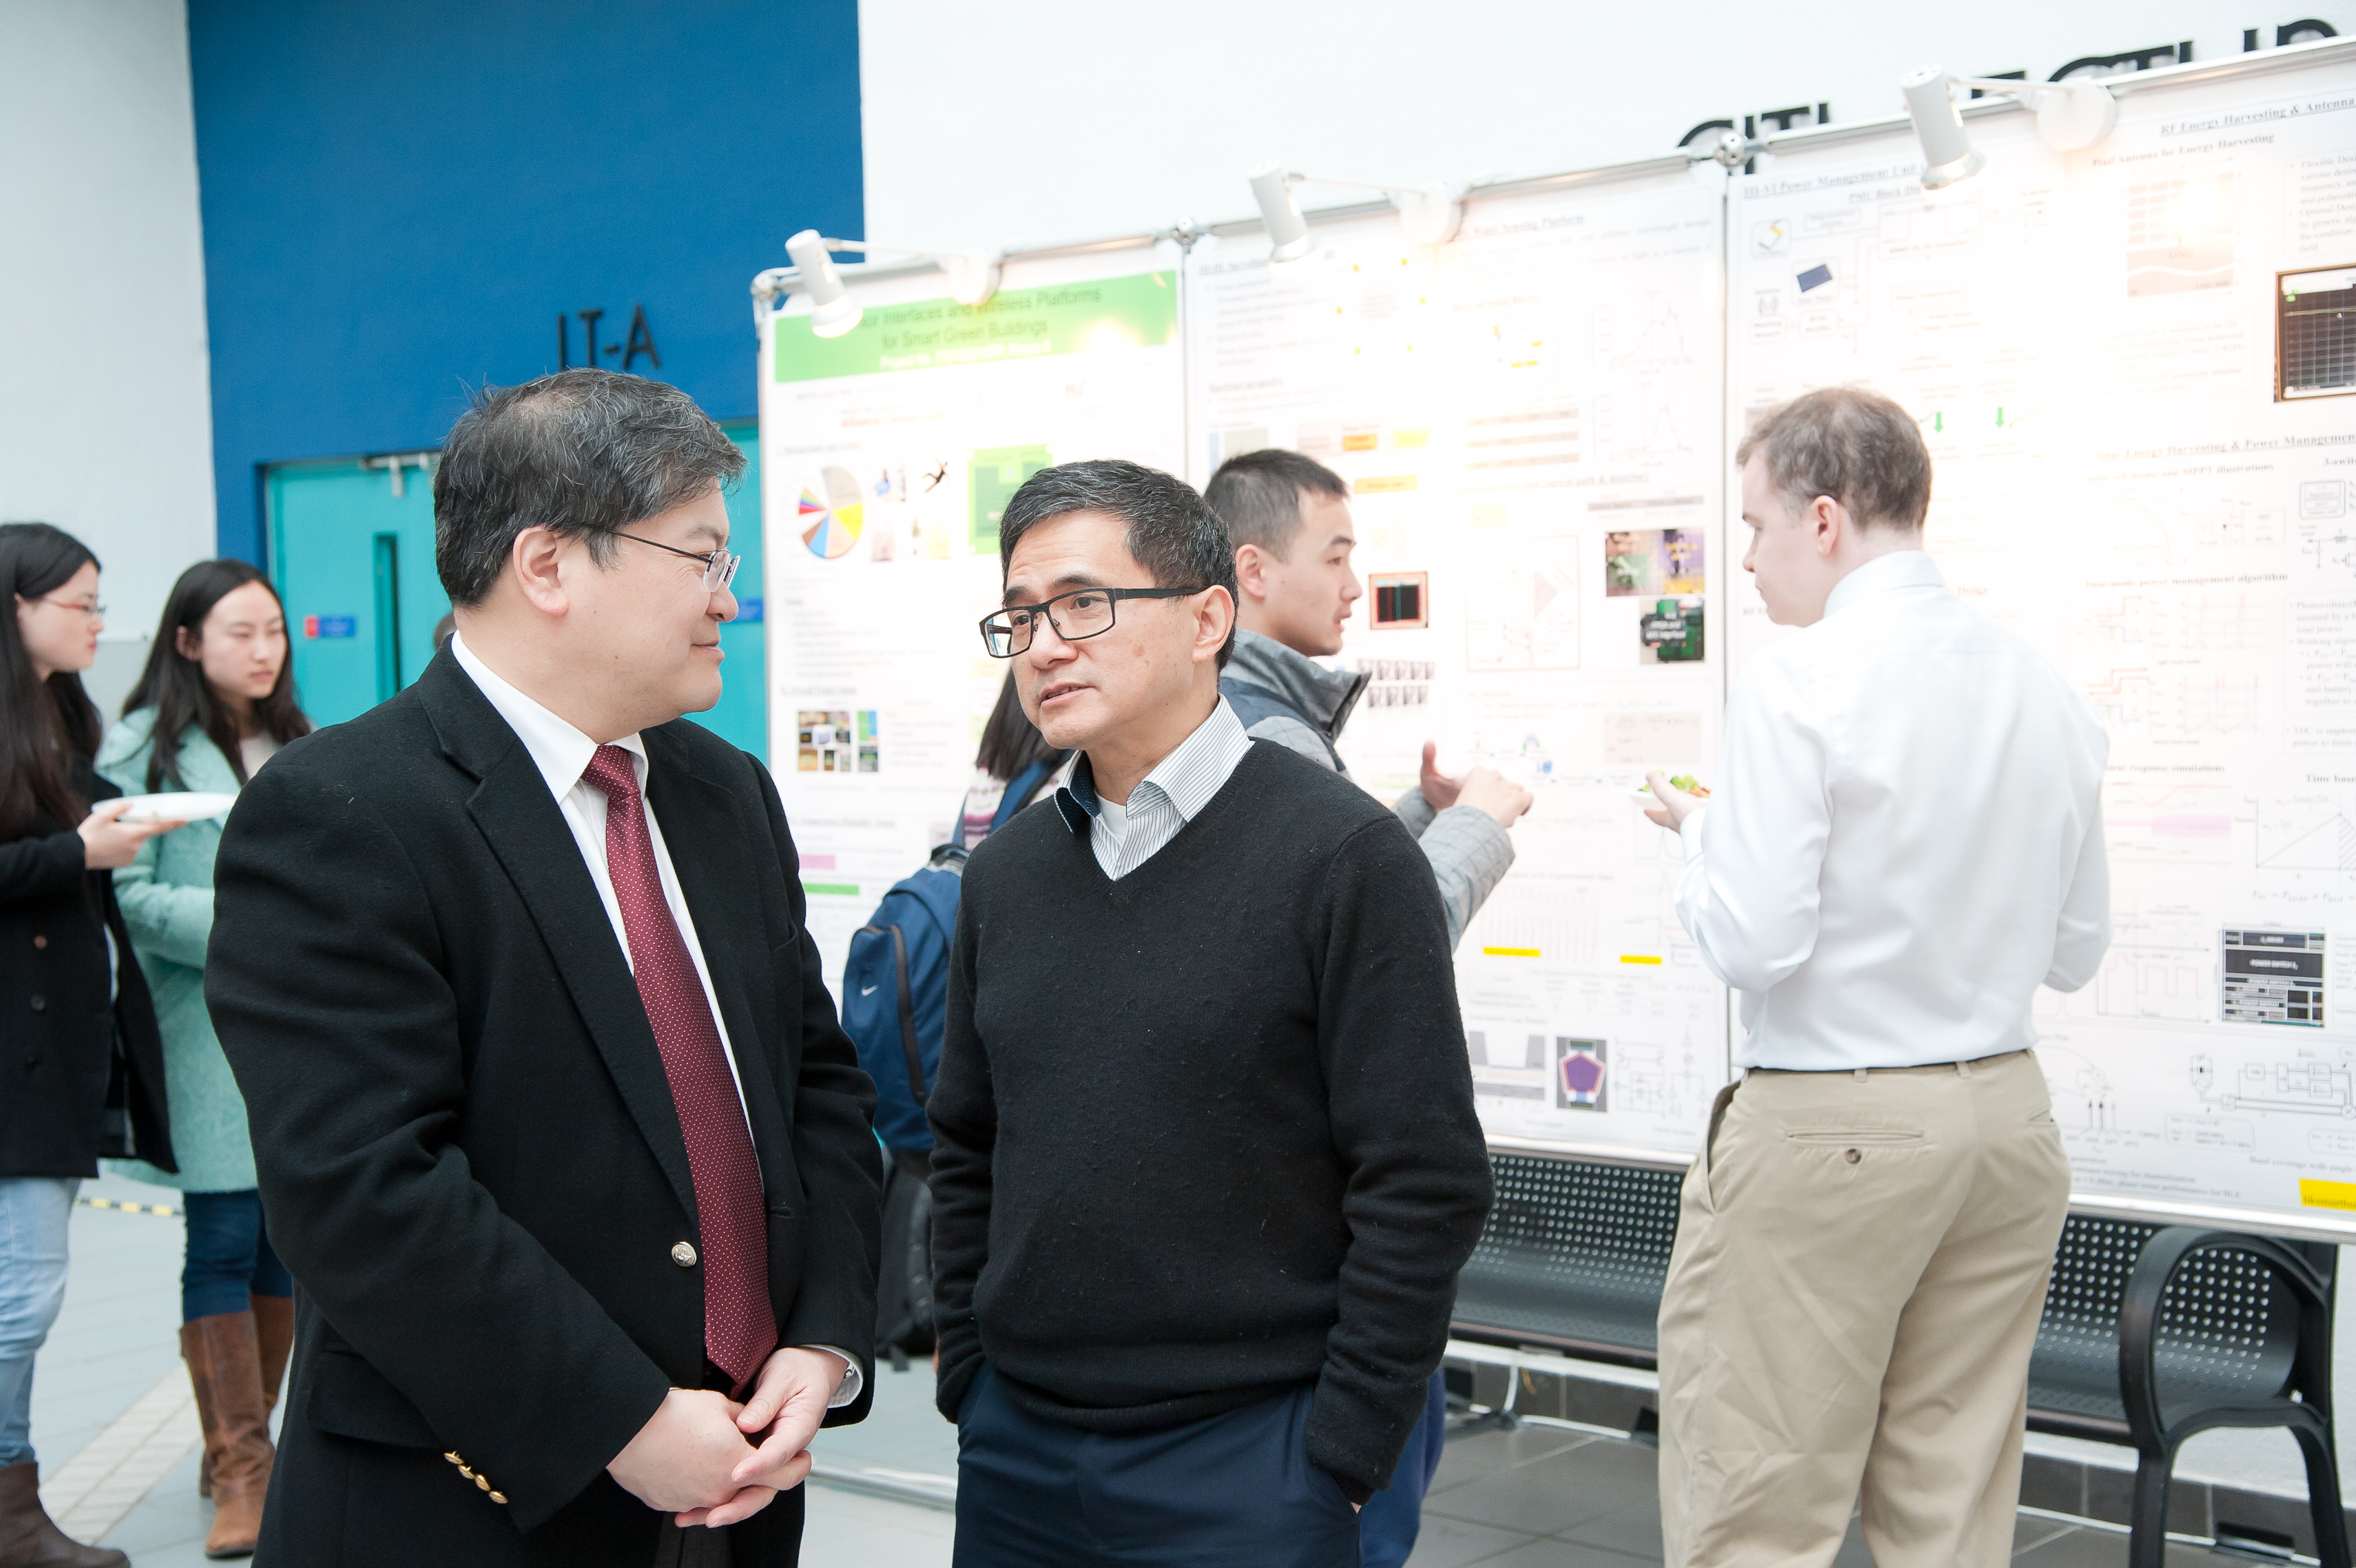 HKU_Res_All_Con_P14567_01_066